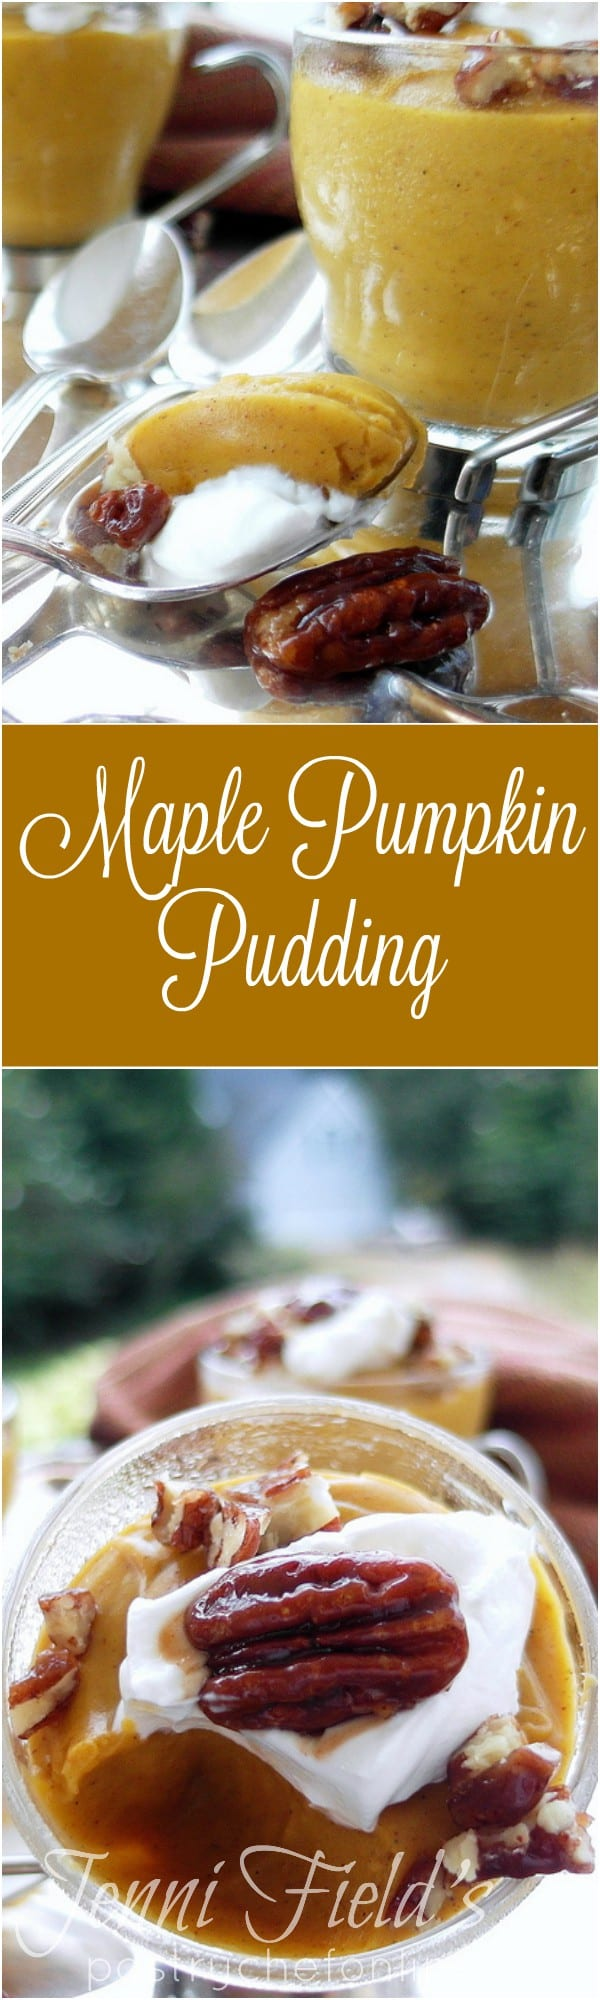 Maple Pumpkin Pudding is for people who love eating pumpkin pie but decide the crust is too filling after a big meal! It's also the perfect solution for not having enough oven space to bake a pie. Make this Thanksgiving pudding on the stove top and refrigerate it for 2-3 days until serving! | pastrychefonline.com